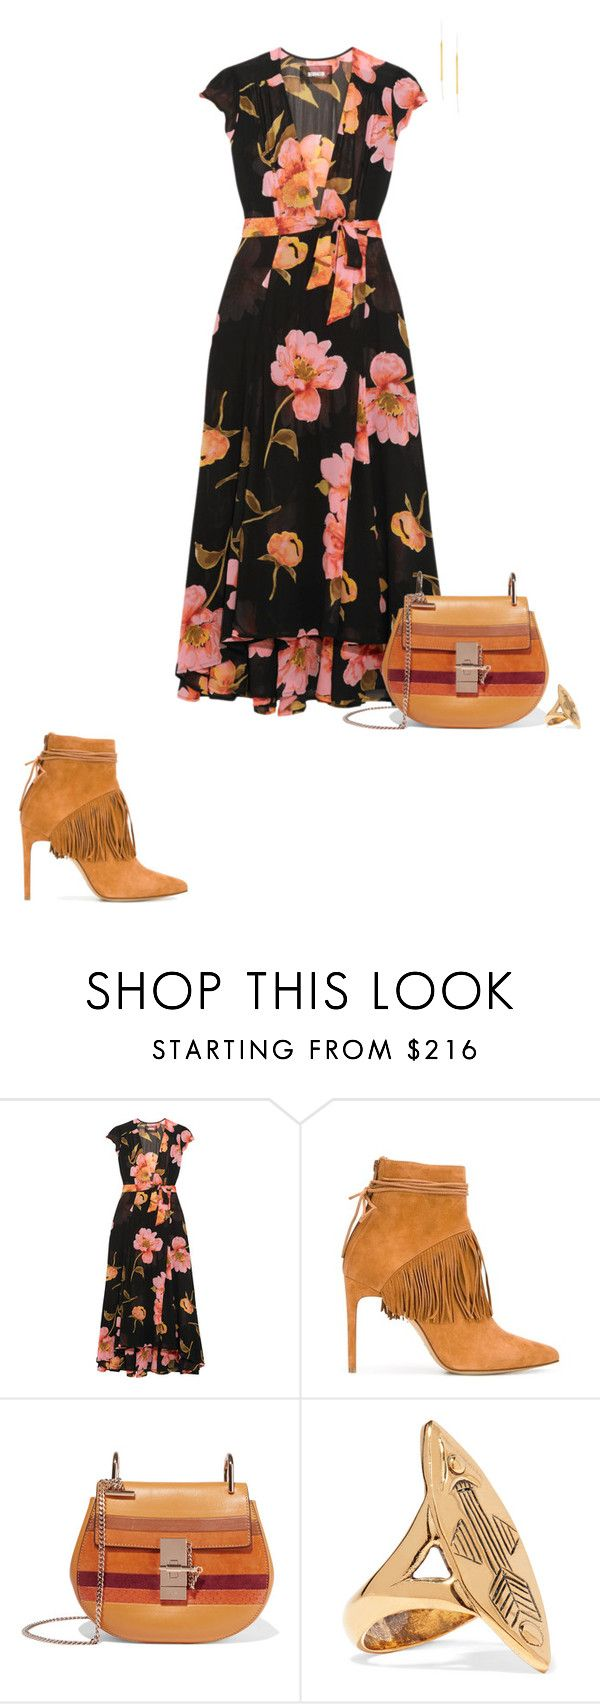 """Untitled #1416"" by biancateicu ❤ liked on Polyvore featuring Reformation, Bionda Castana, Chloé and Maya Magal"